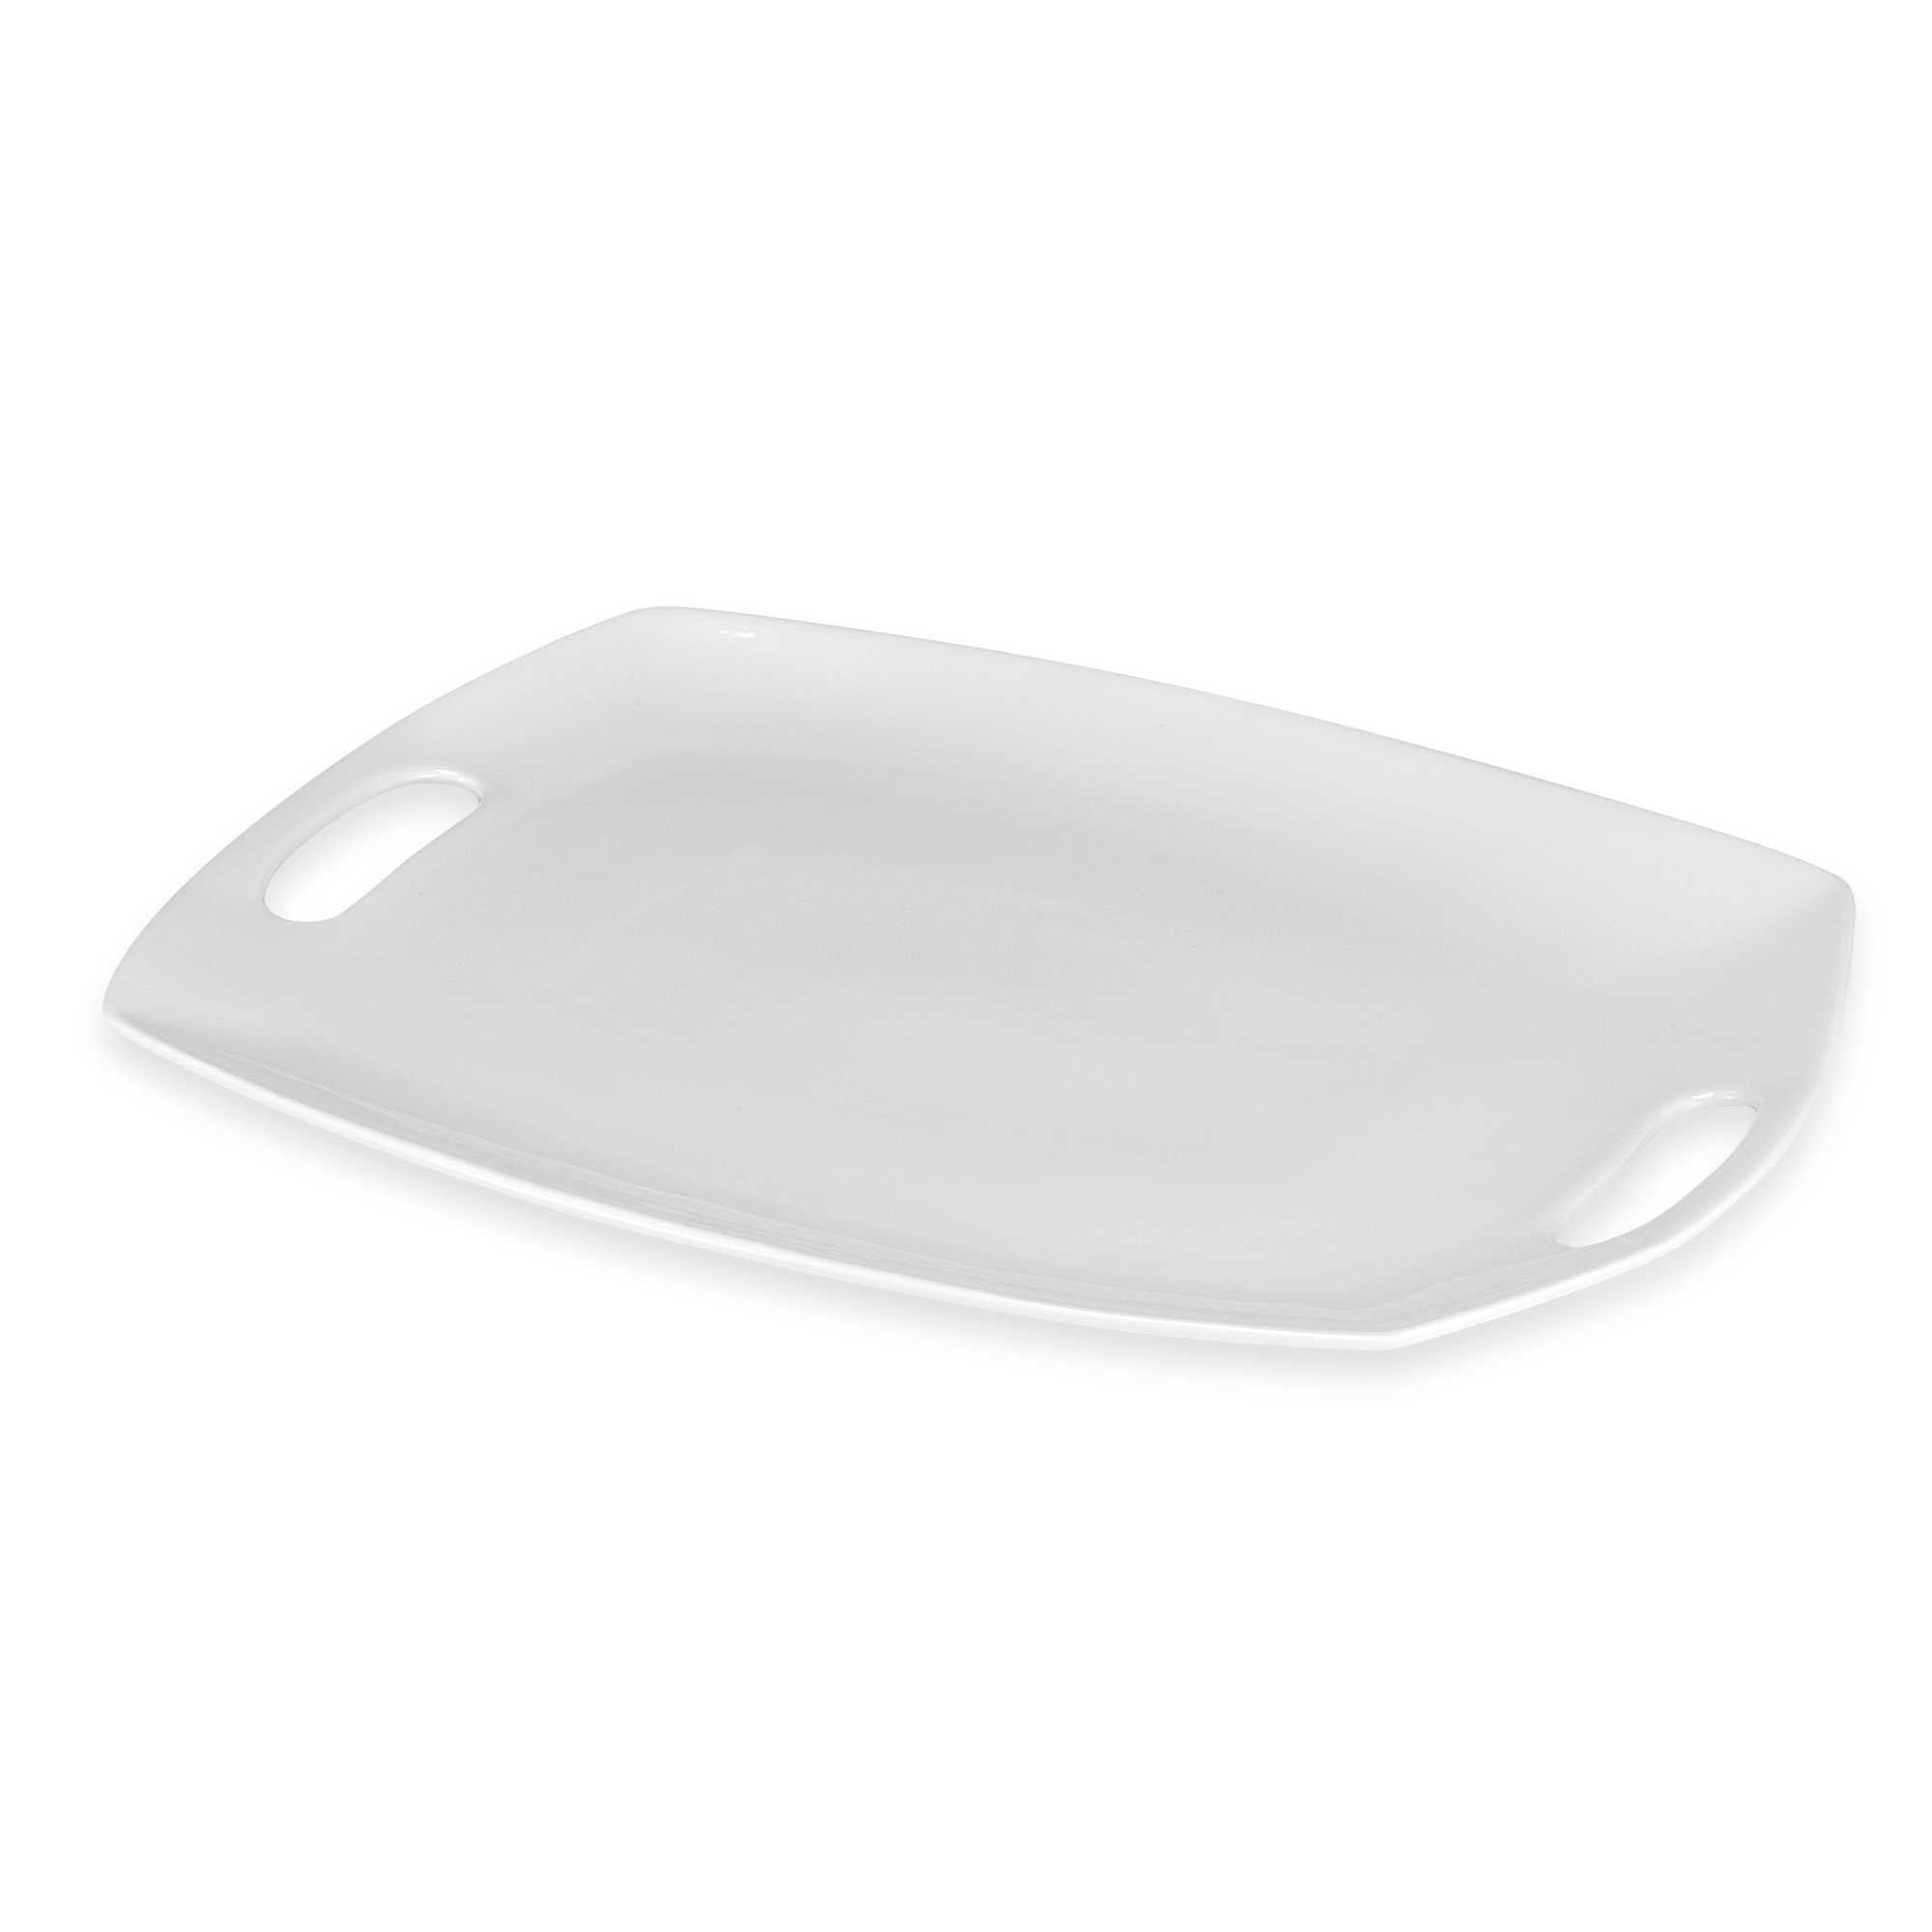 13'' W x 17-1/2'' L Everyday White by Fitz and Floyd Platter with Handles